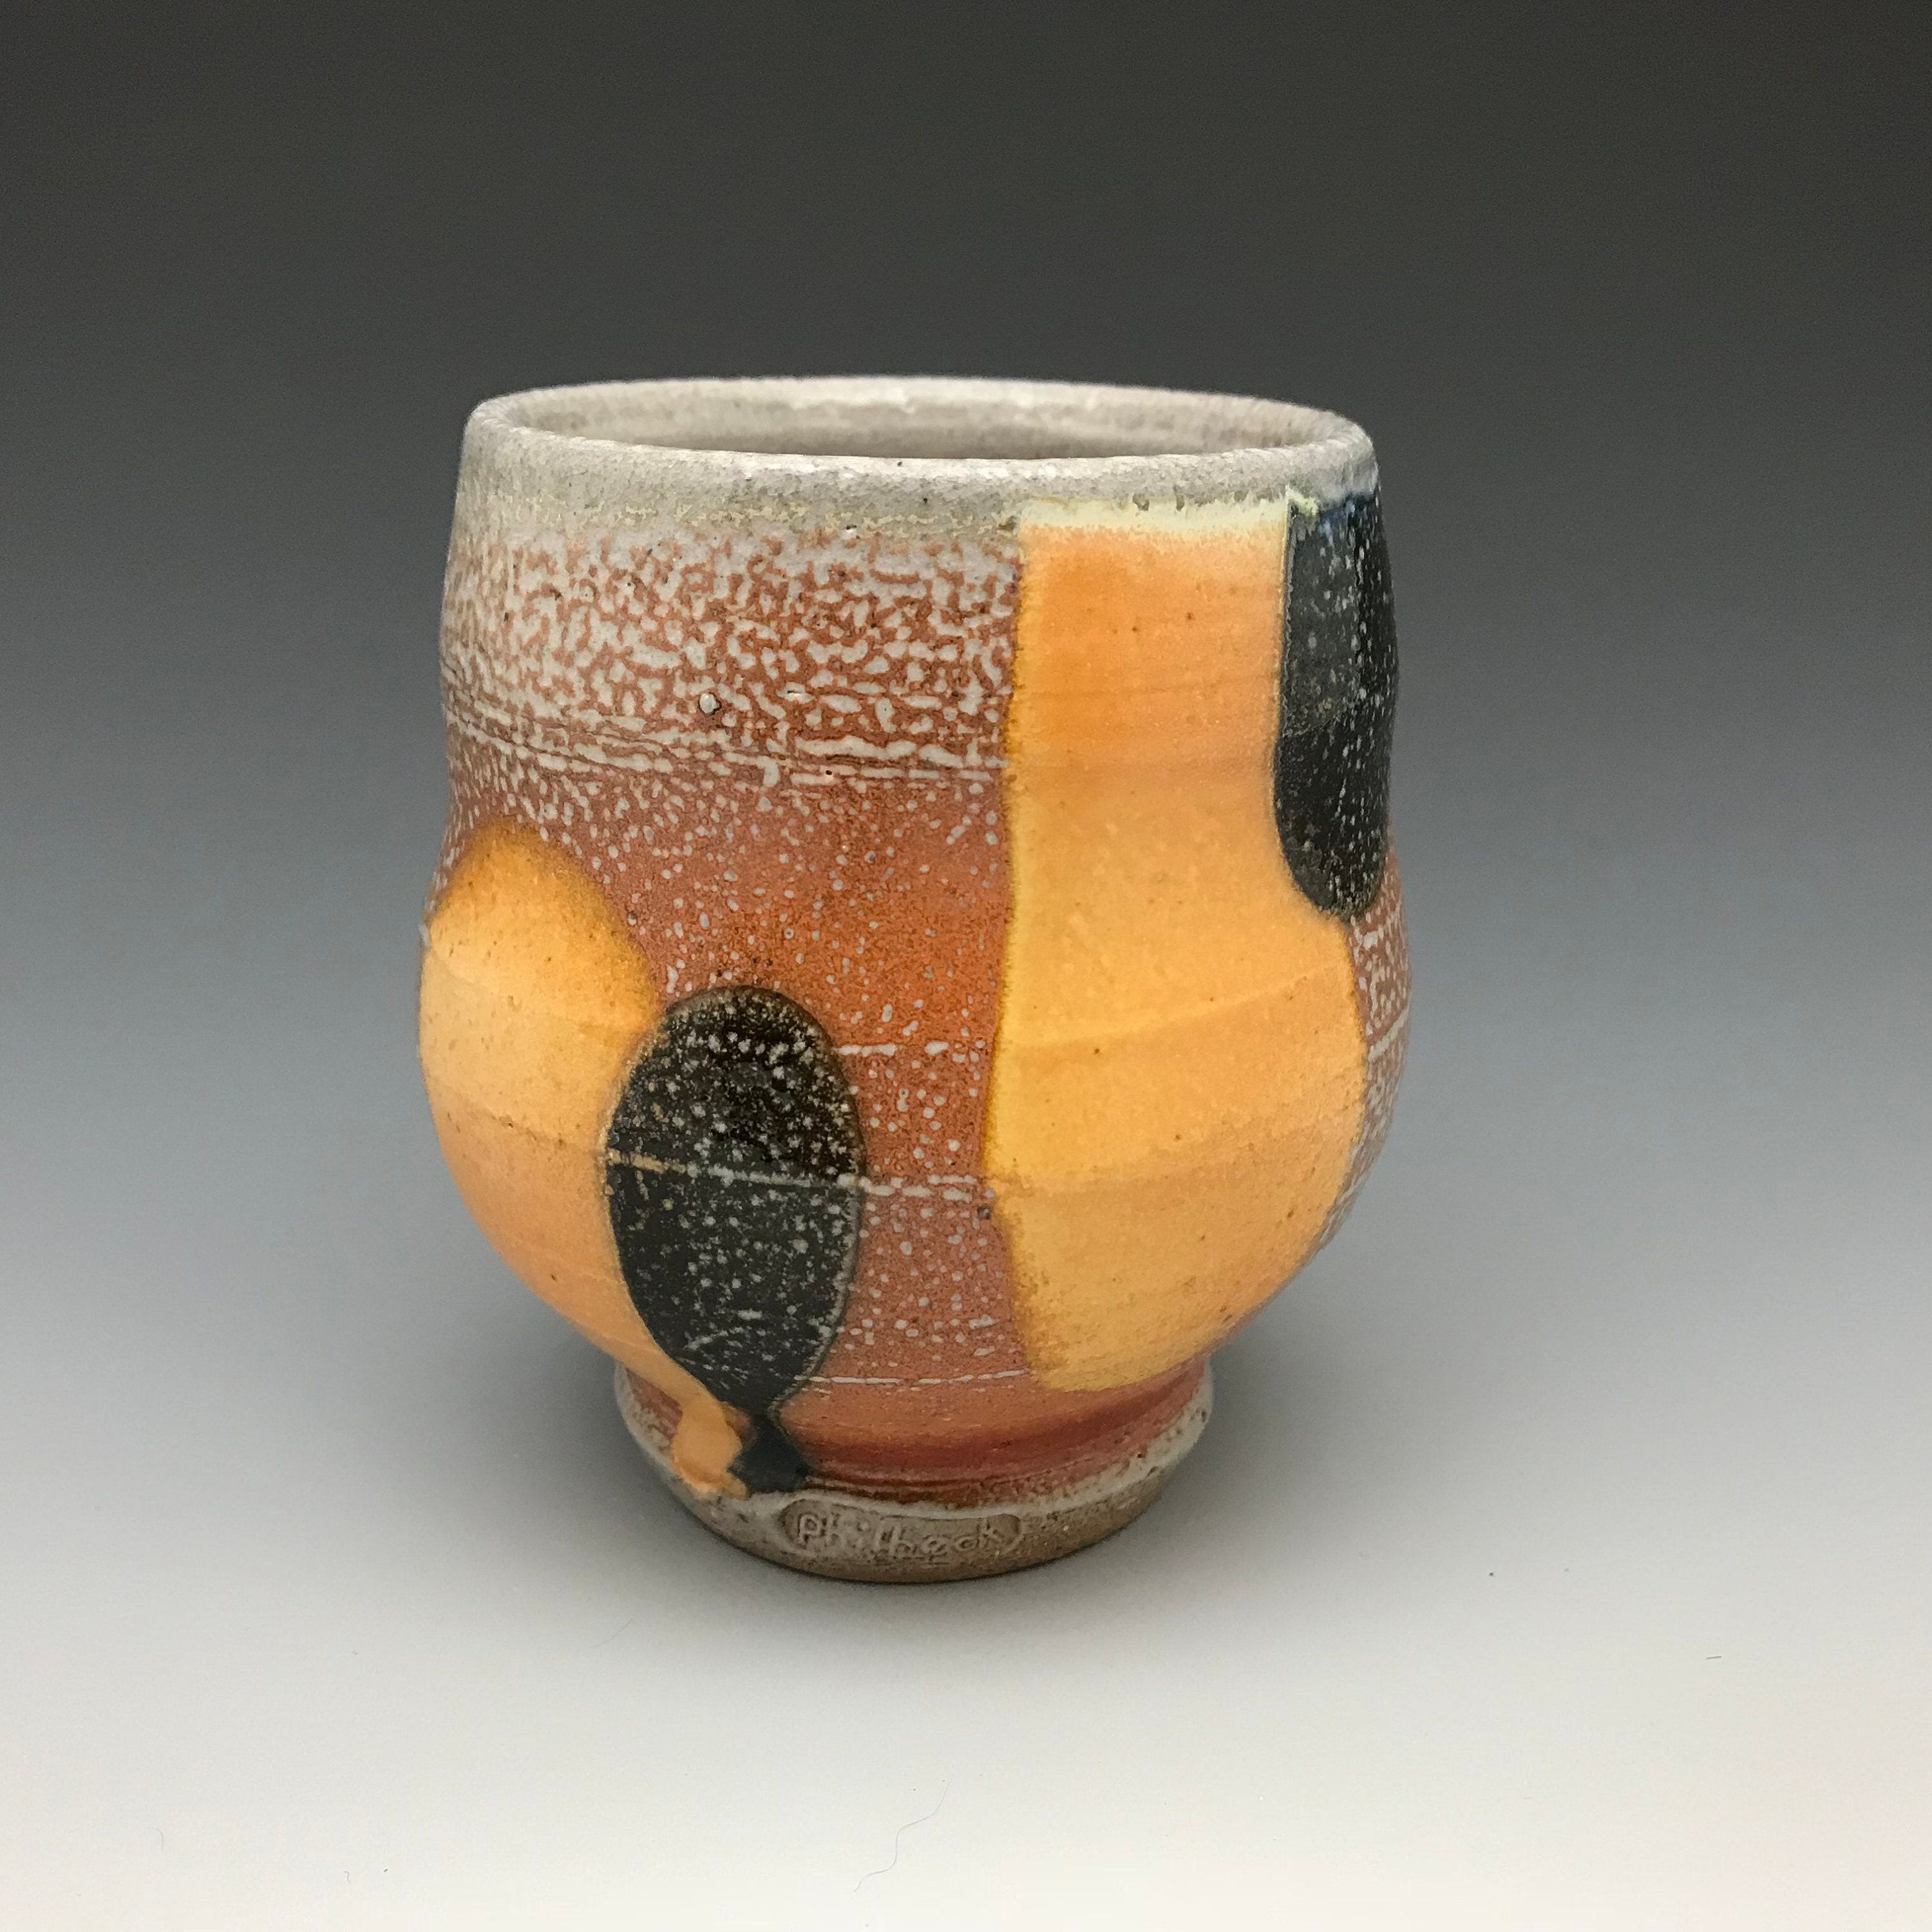 colorful, artistic, and totally unique ceramic tumblers